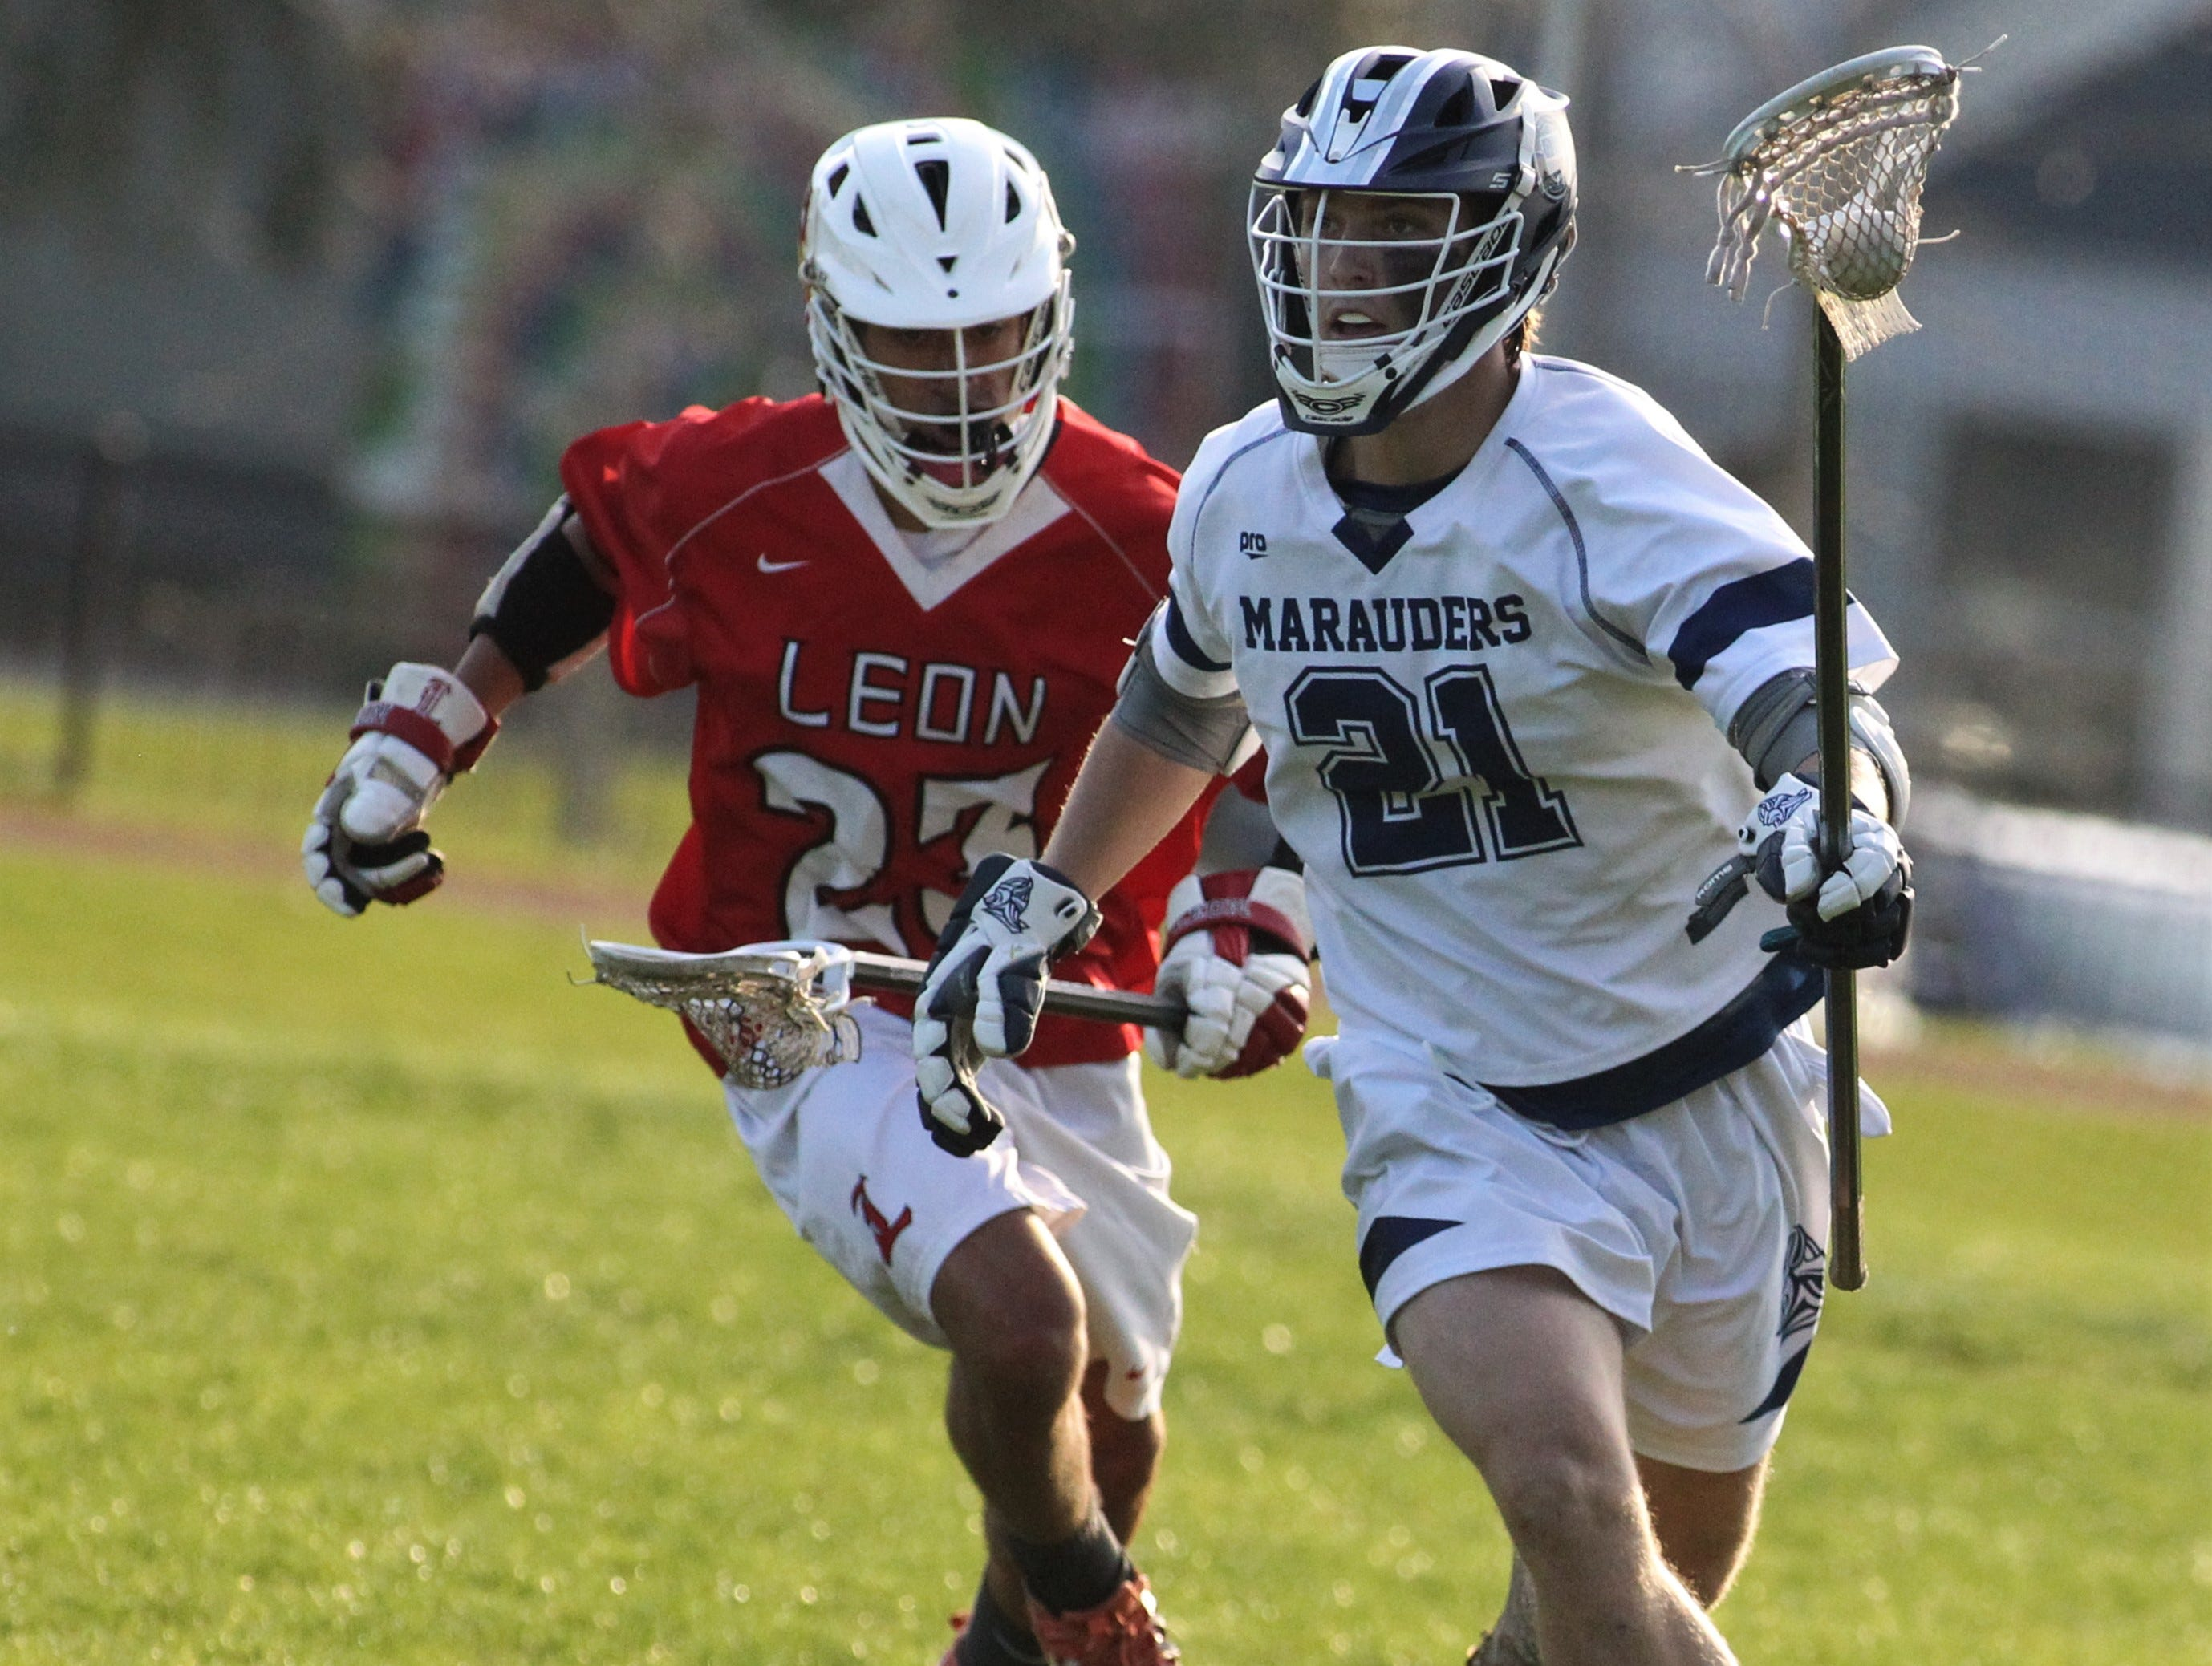 Maclay defender Mark Scott carries upfield as the Marauders' lacrosse team beat Leon 15-5 on their annual Military Appreciation Night on March 12, 2019.